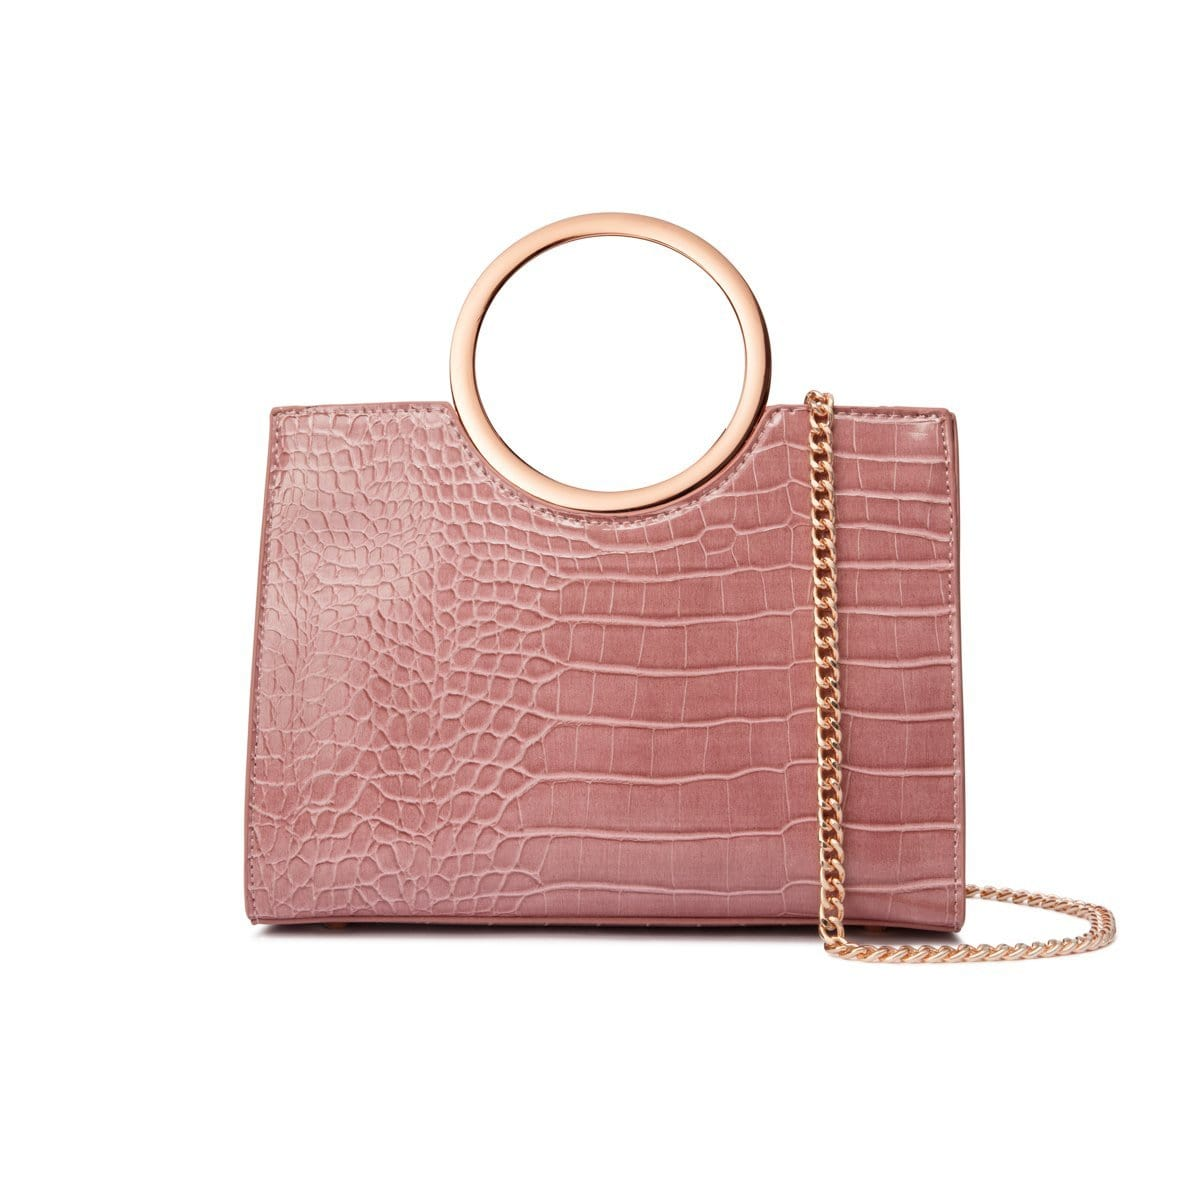 Dusky Rose Arora Handbag Rose Gold